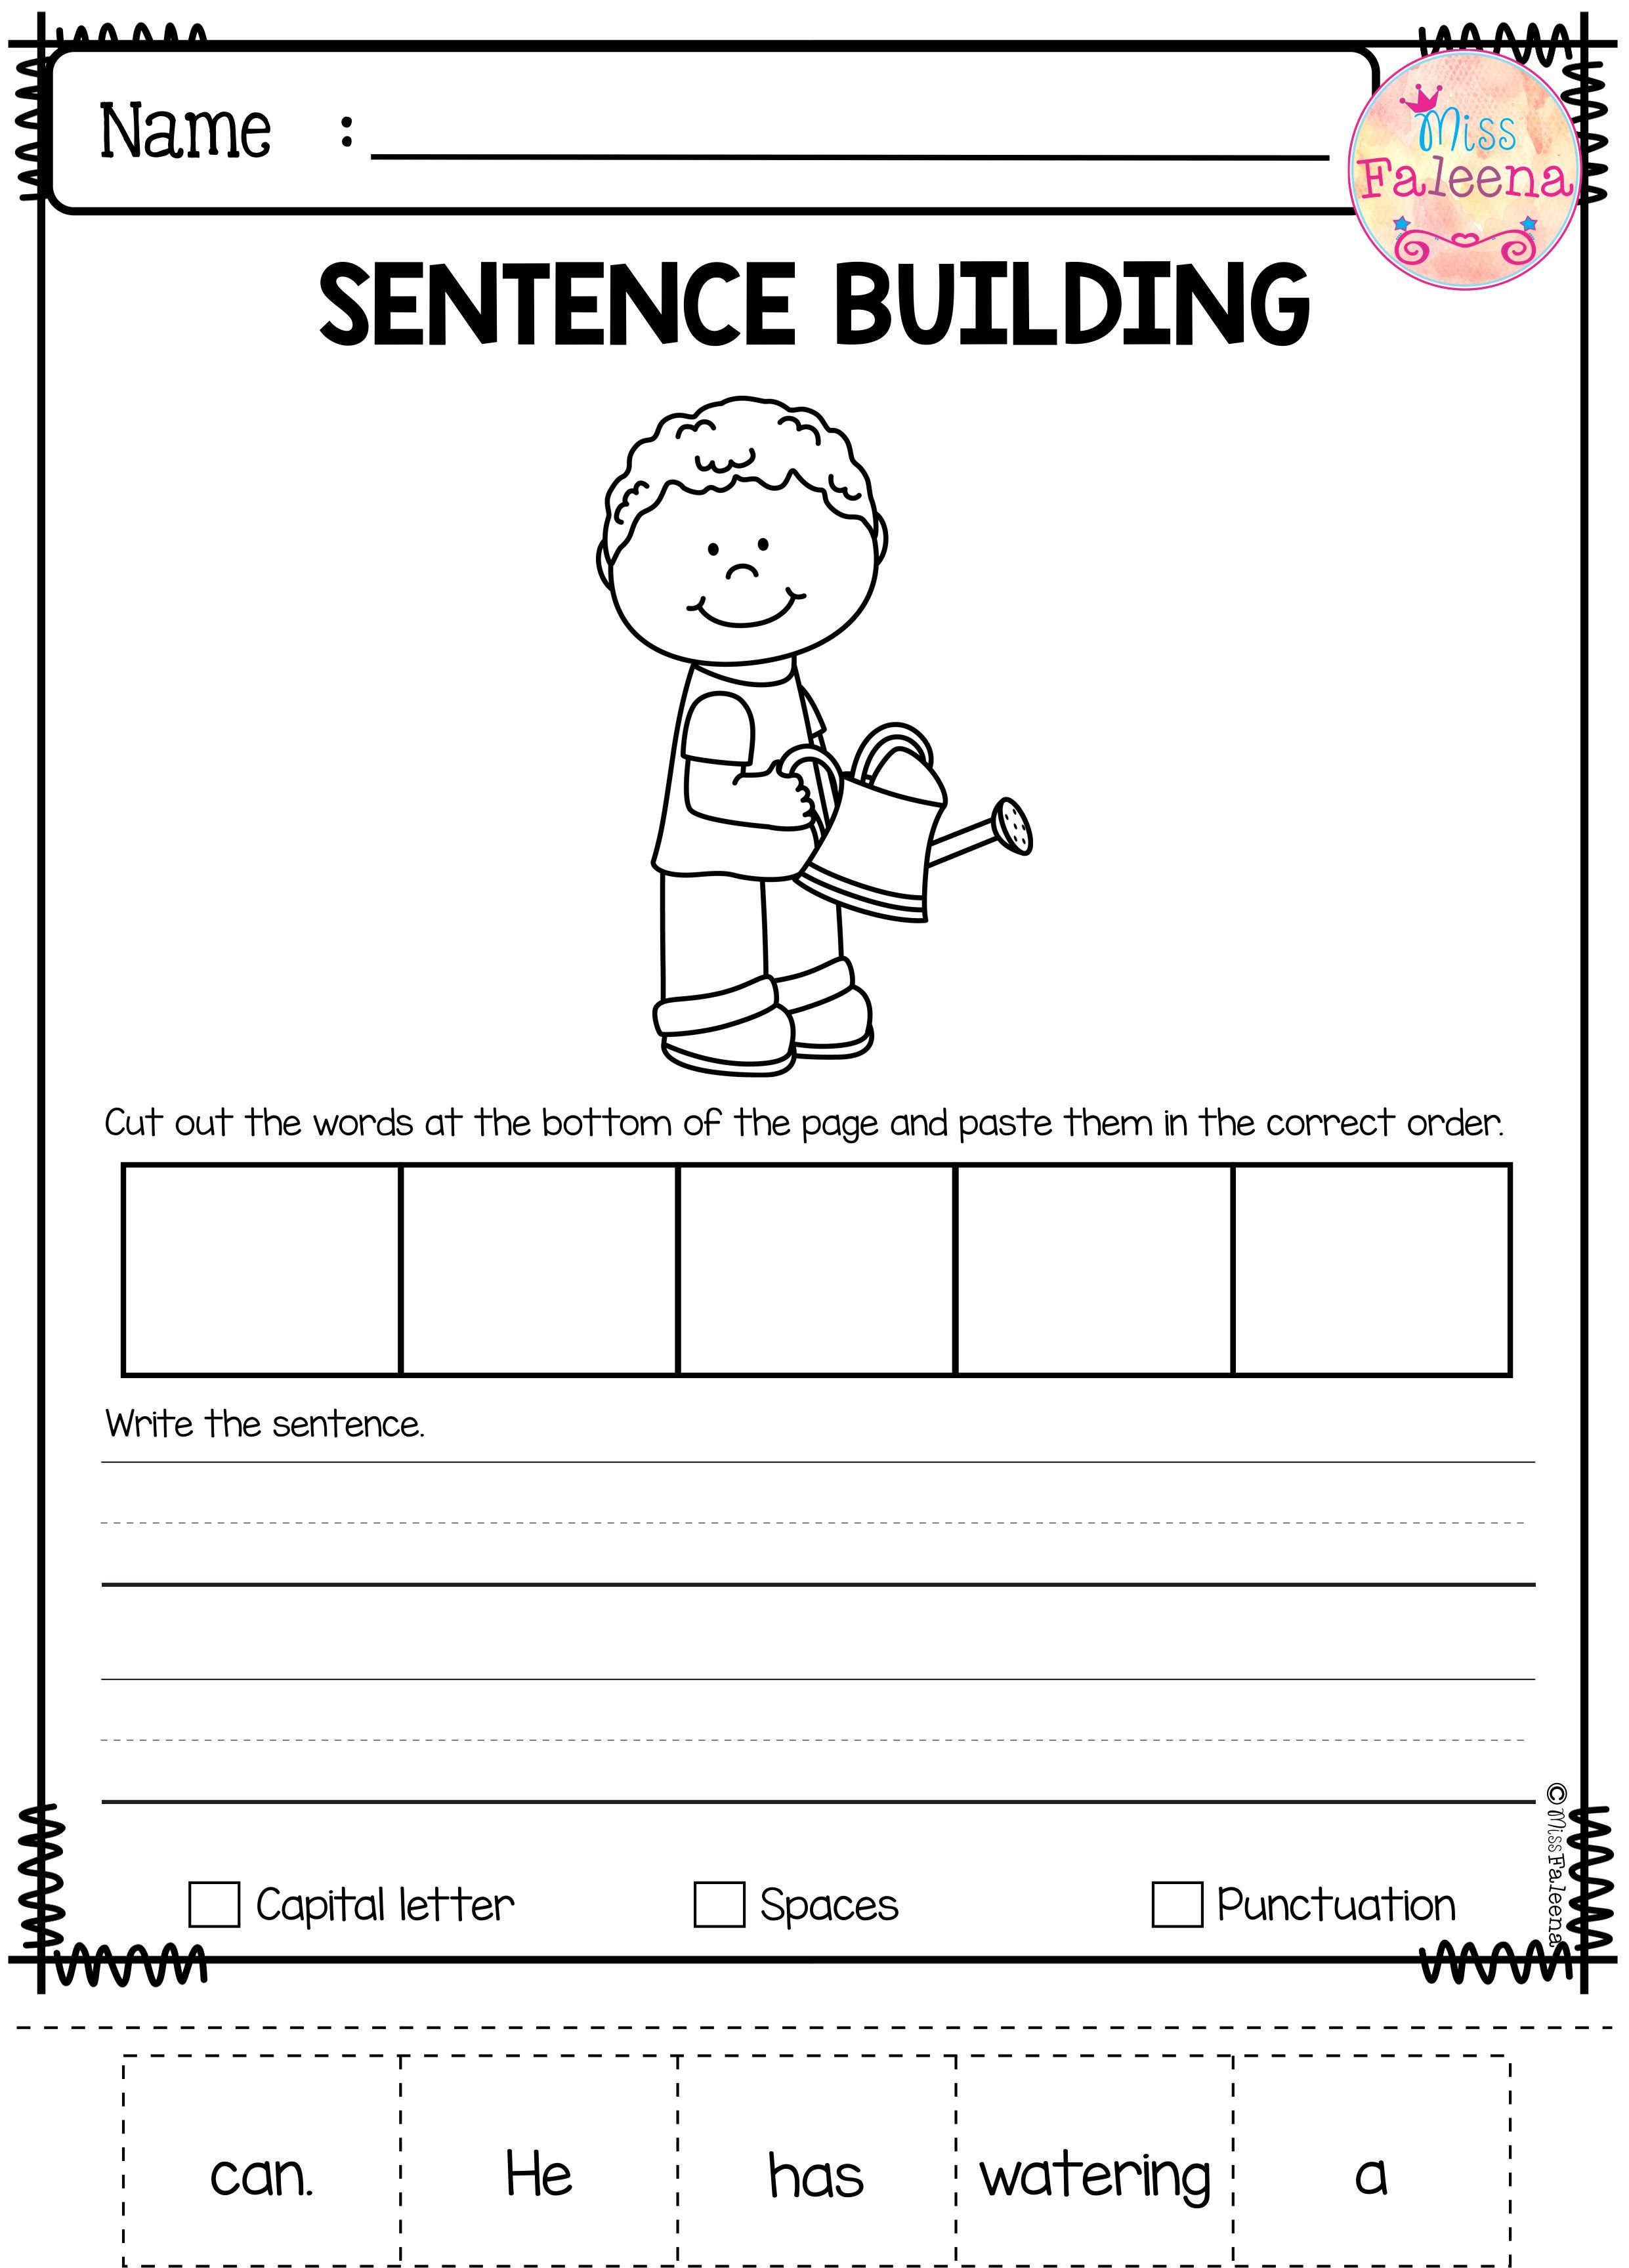 May Sentence Building Has 30 Pages Of Sentence Building Worksheets This Pr Kindergarten Writing Lesson Plans Kindergarten Writing Lessons Kindergarten Writing [ 3456 x 2482 Pixel ]